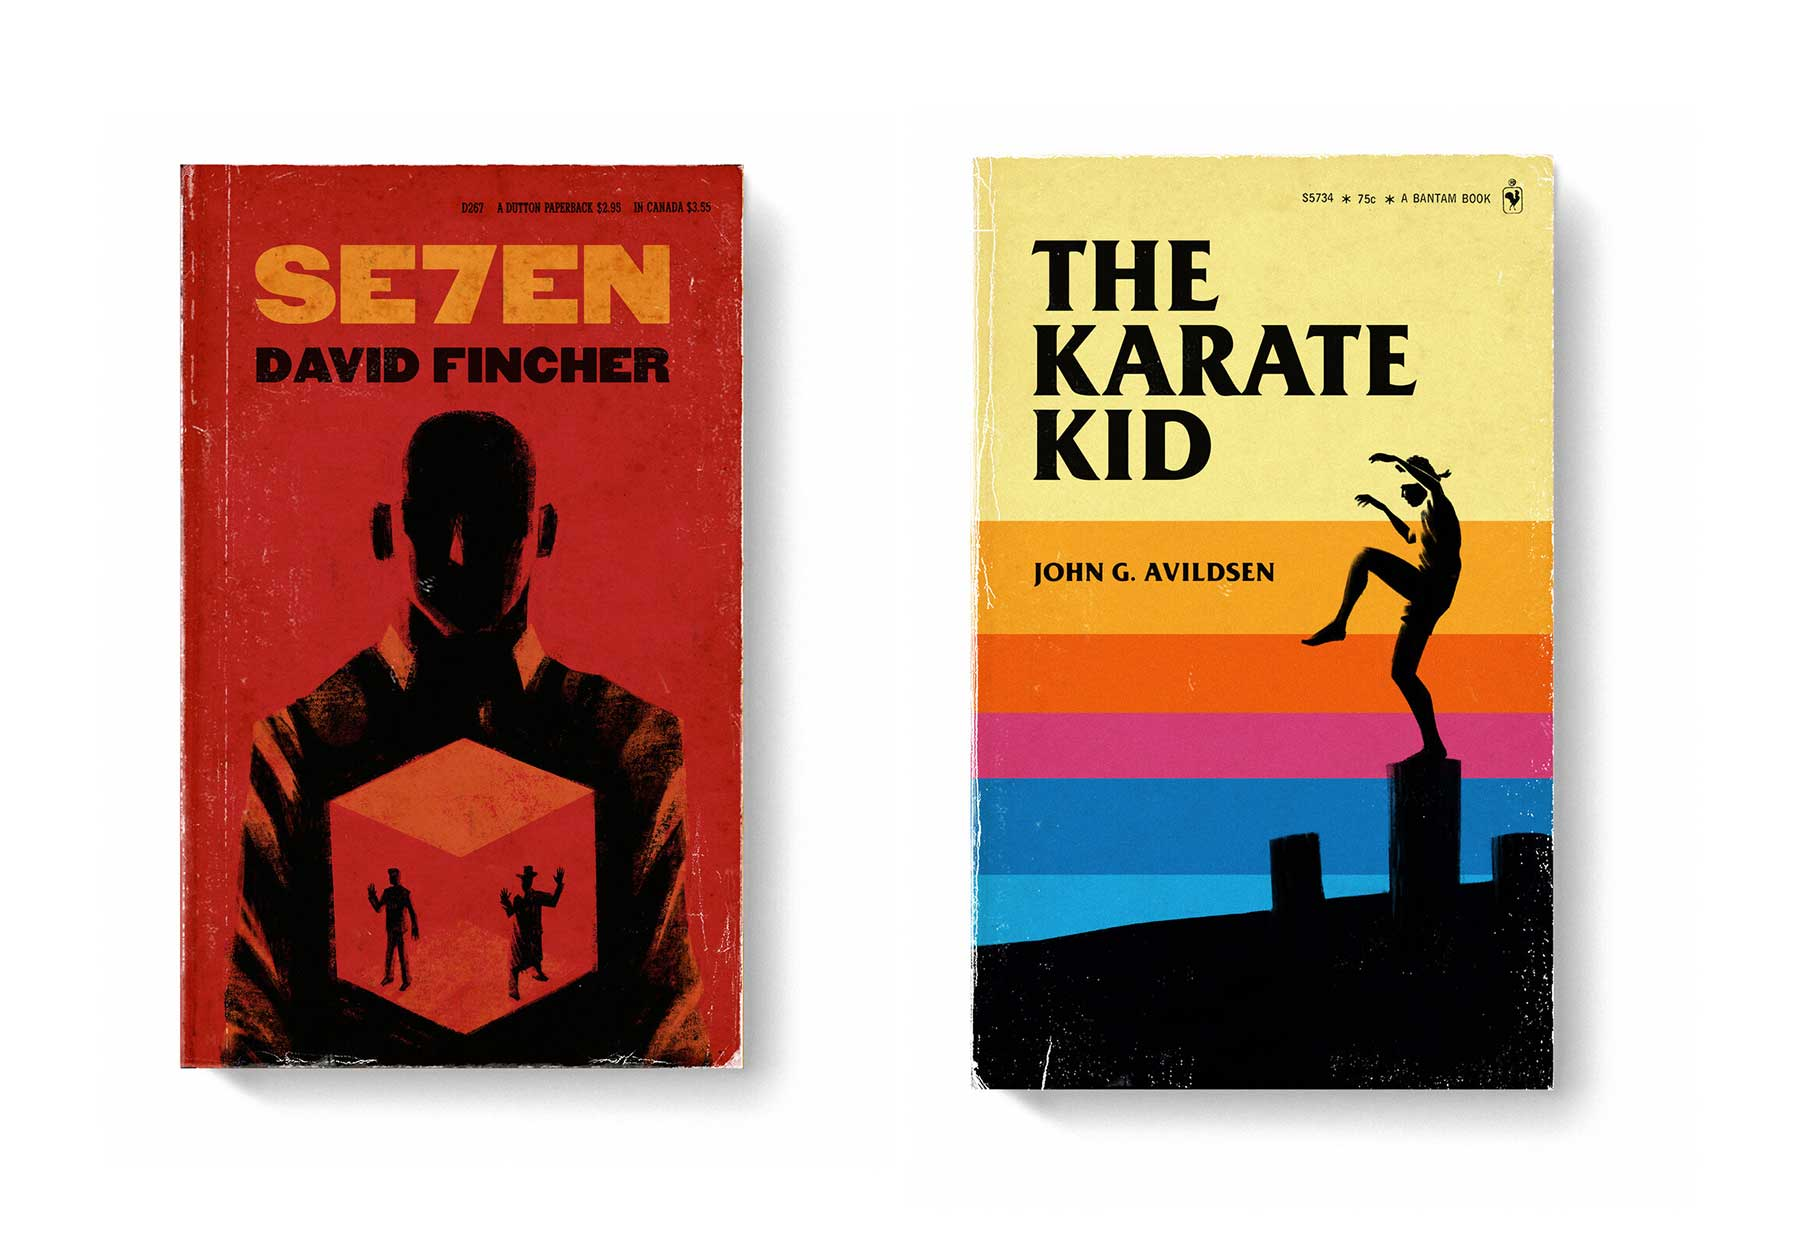 Film-Klassiker als Bücher-Design good-movies-as-old-books-Matt-Stevens_06